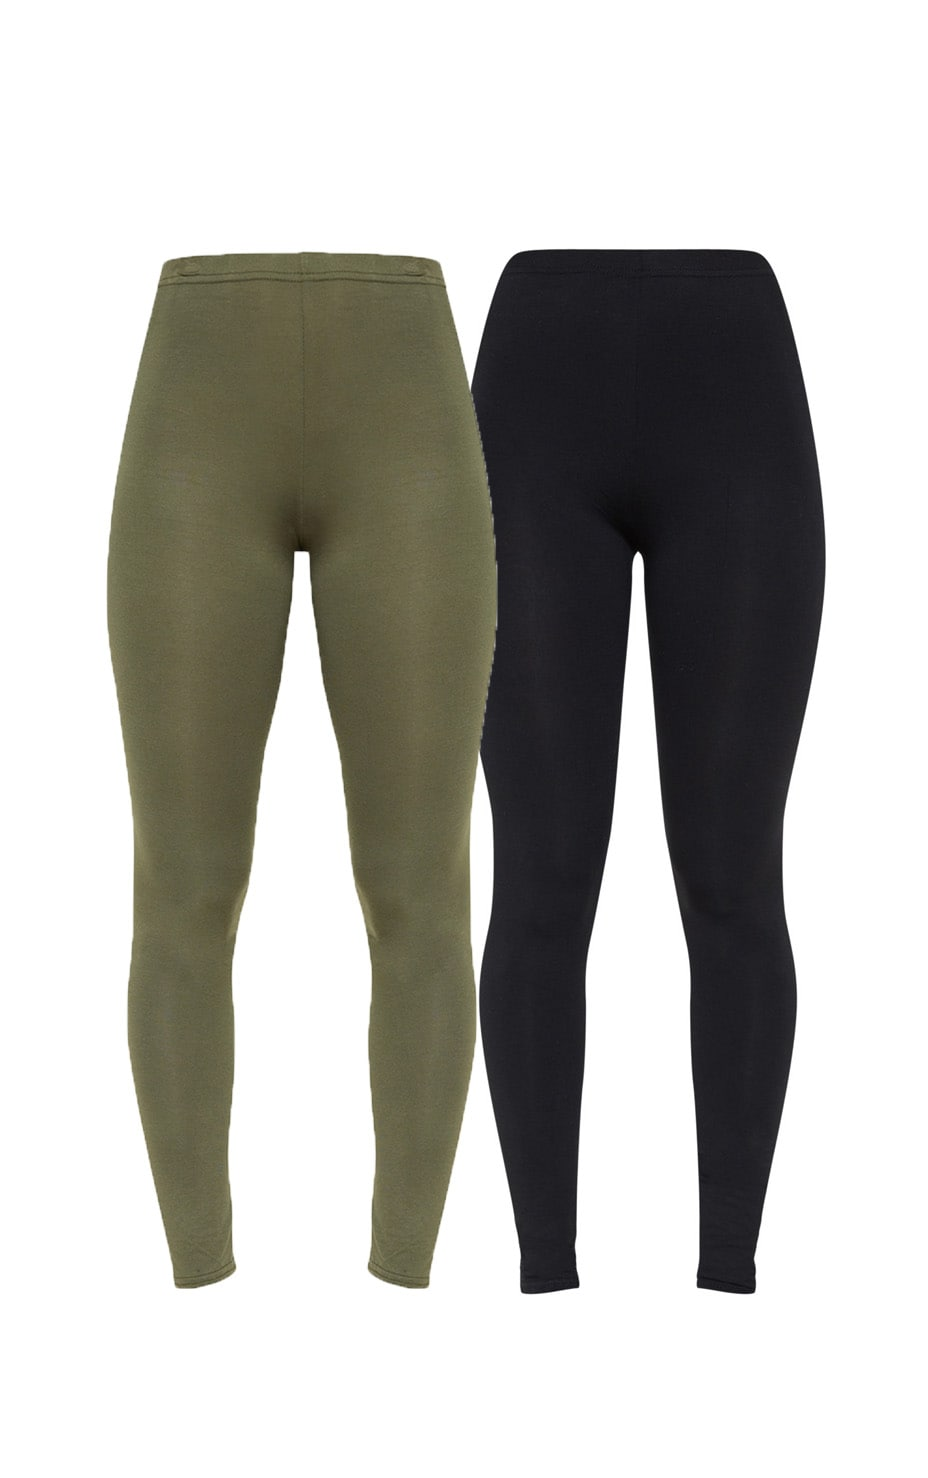 Basic Black and Khaki Jersey Leggings 2 Pack 3